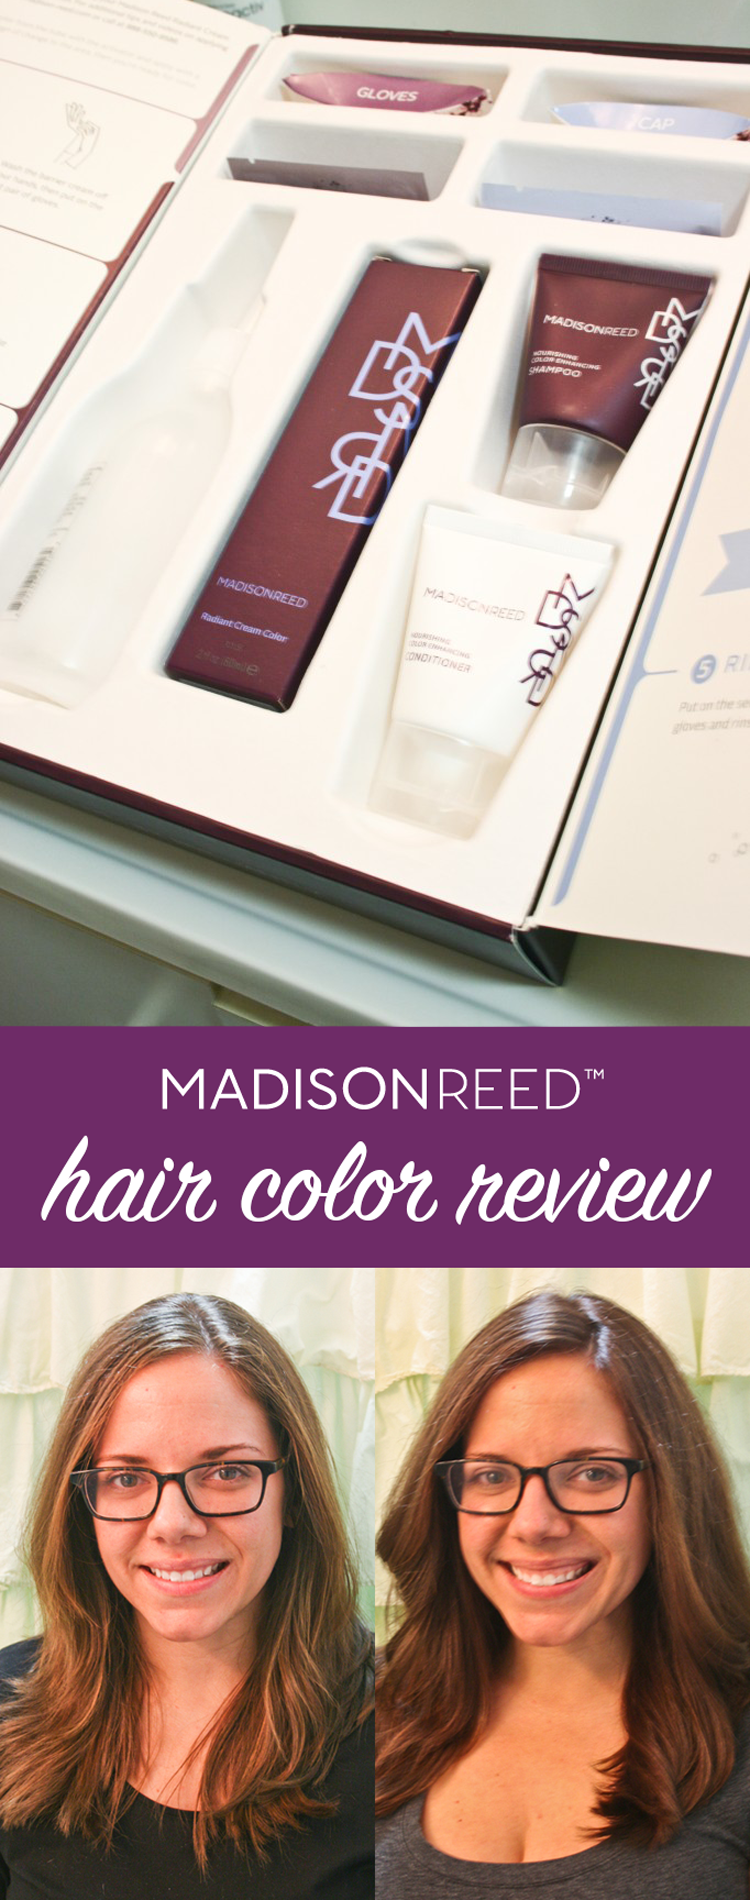 My review of Madison Reed's permanent hair color. Spoiler alert: I love it!